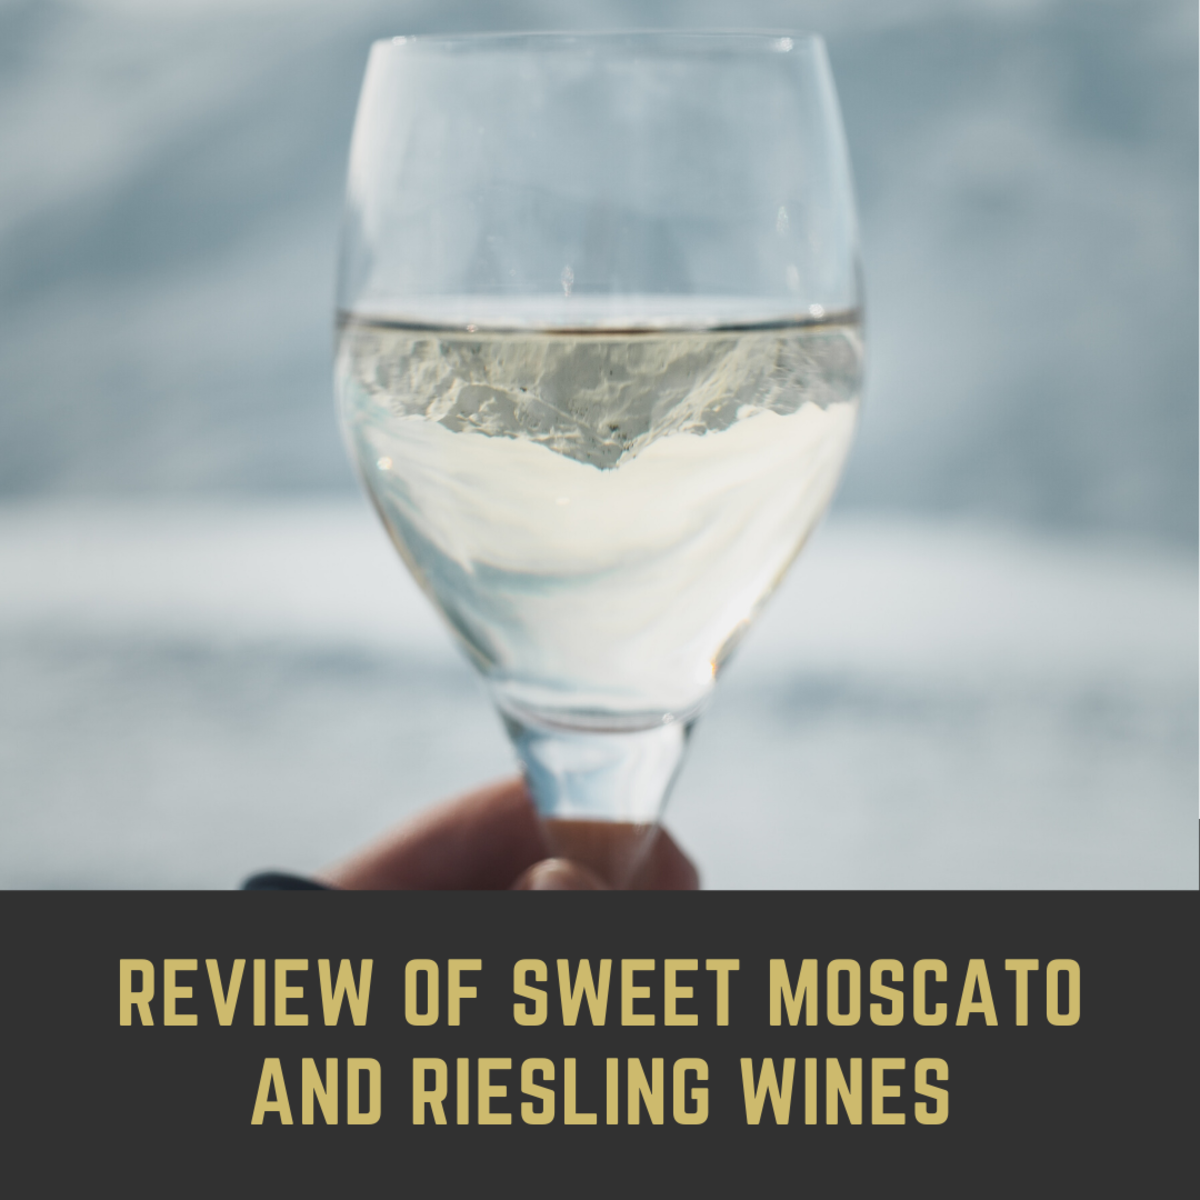 A Review of Sweet Moscato and Riesling Wines